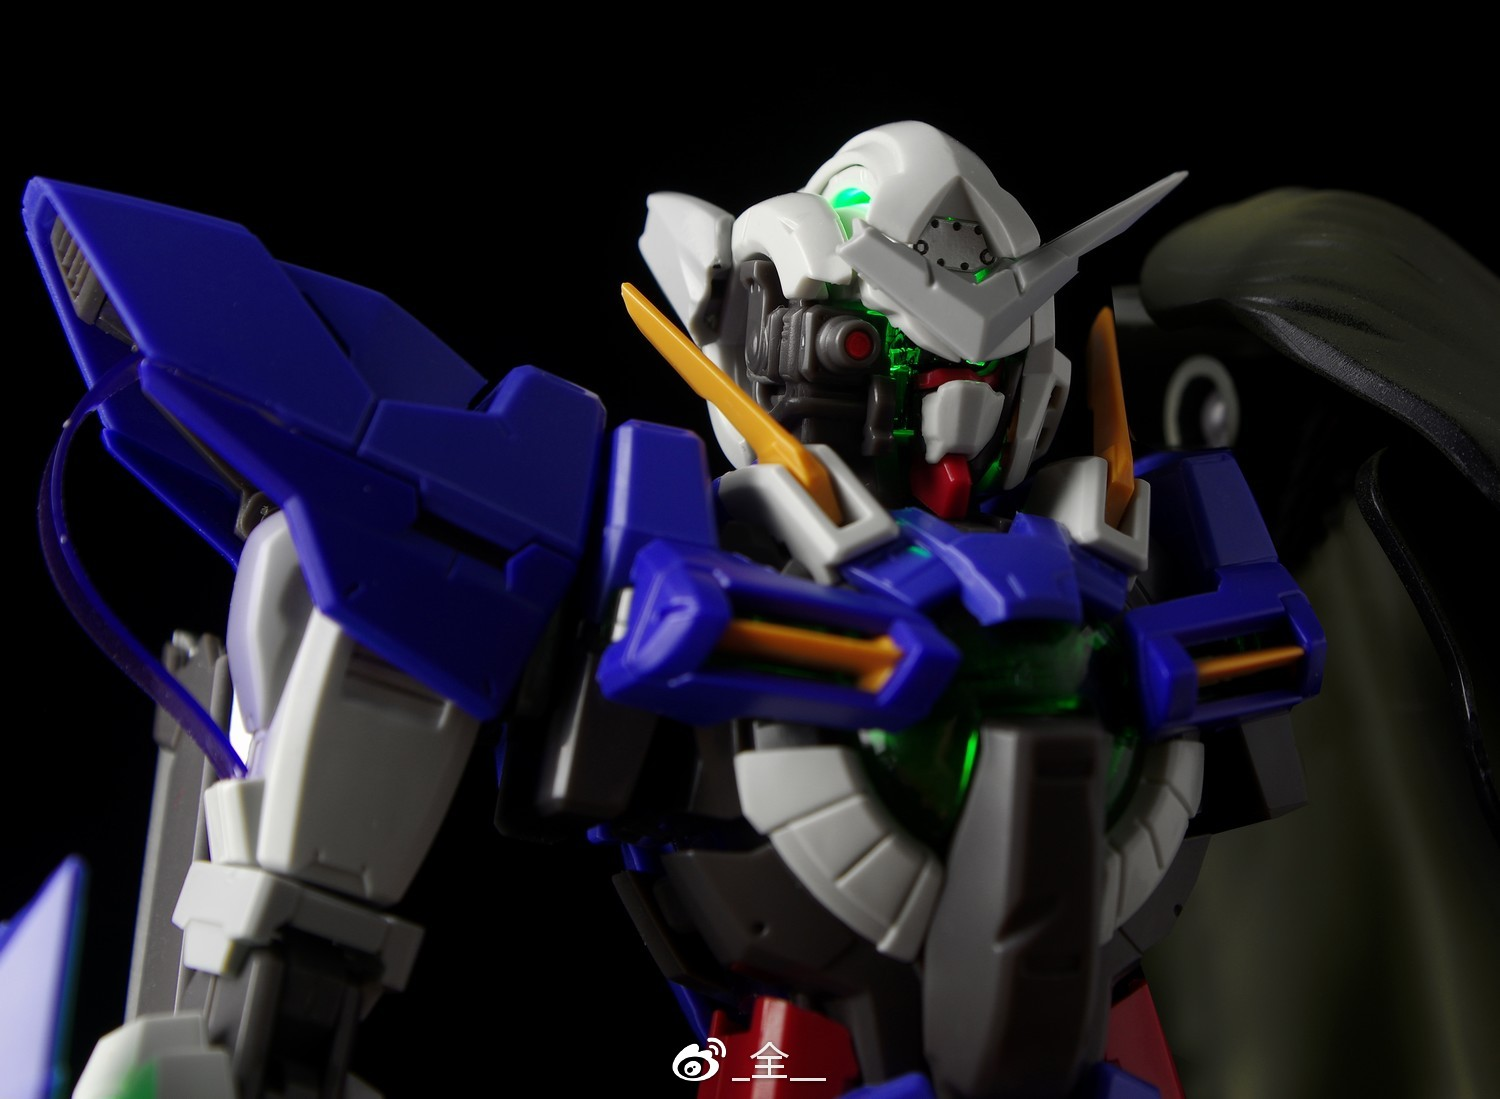 S269_mg_exia_led_hobby_star_inask_082.jpg